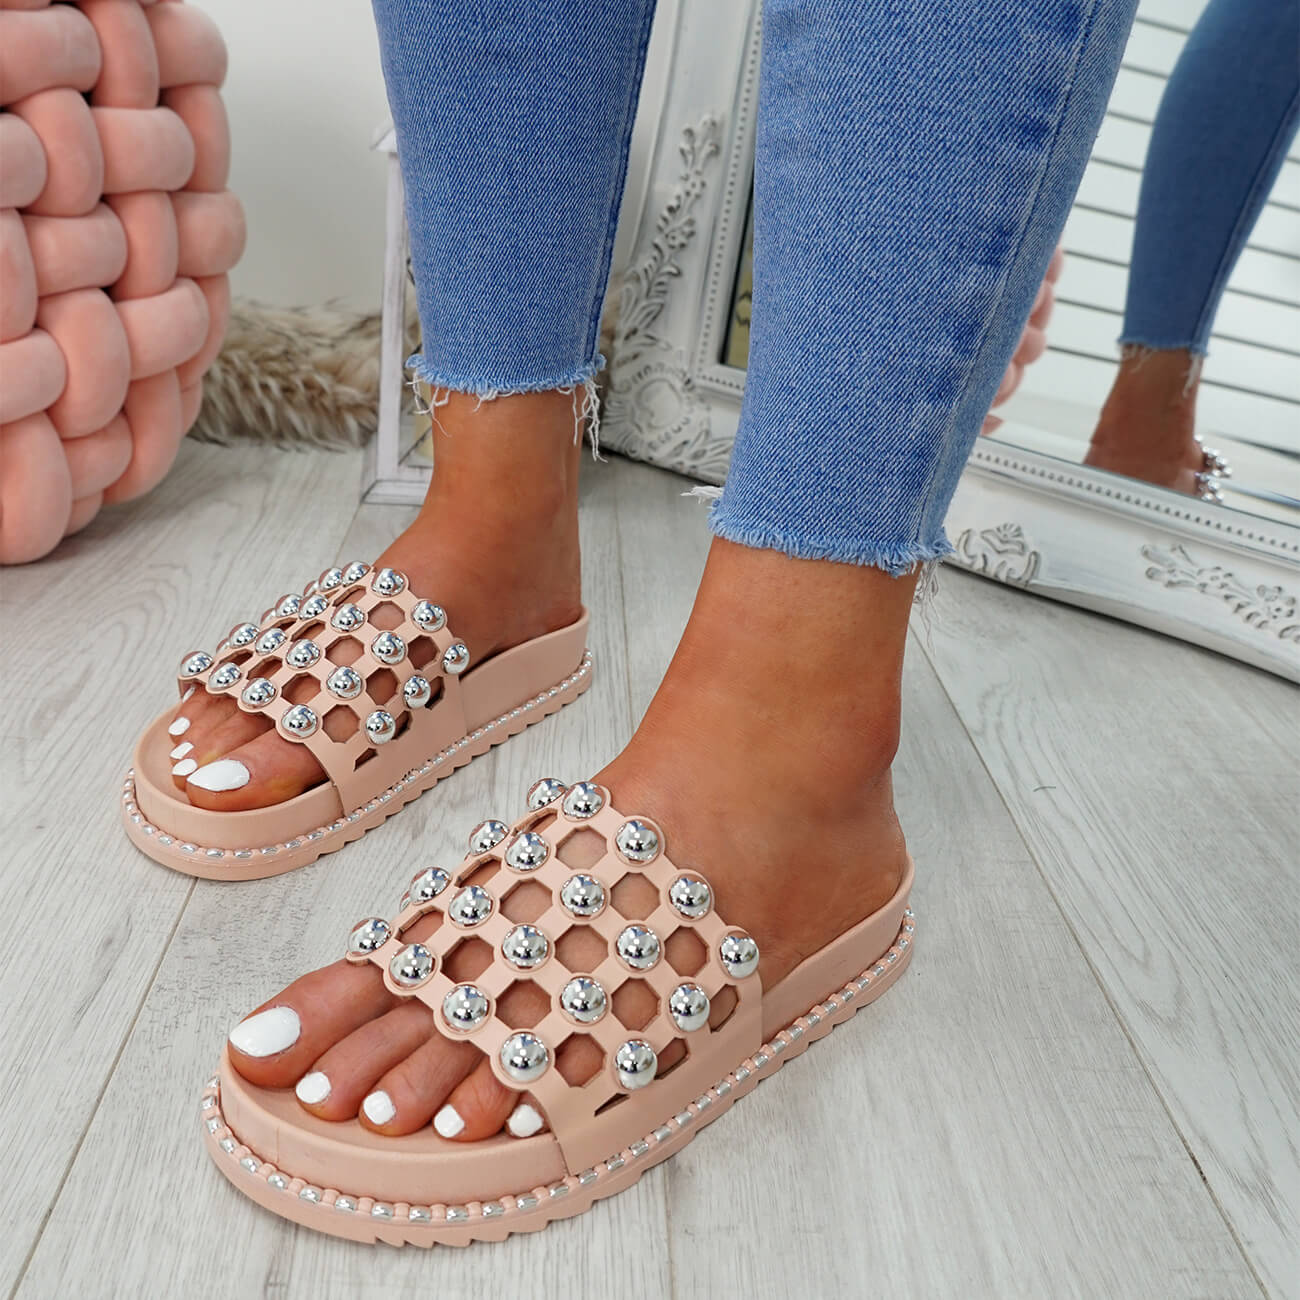 WOMENS-LADIES-PEARL-STUDDED-SLIP-ON-FLAT-SANDALS-HEELS-FLIP-FLOP-SHOES-SIZE thumbnail 13